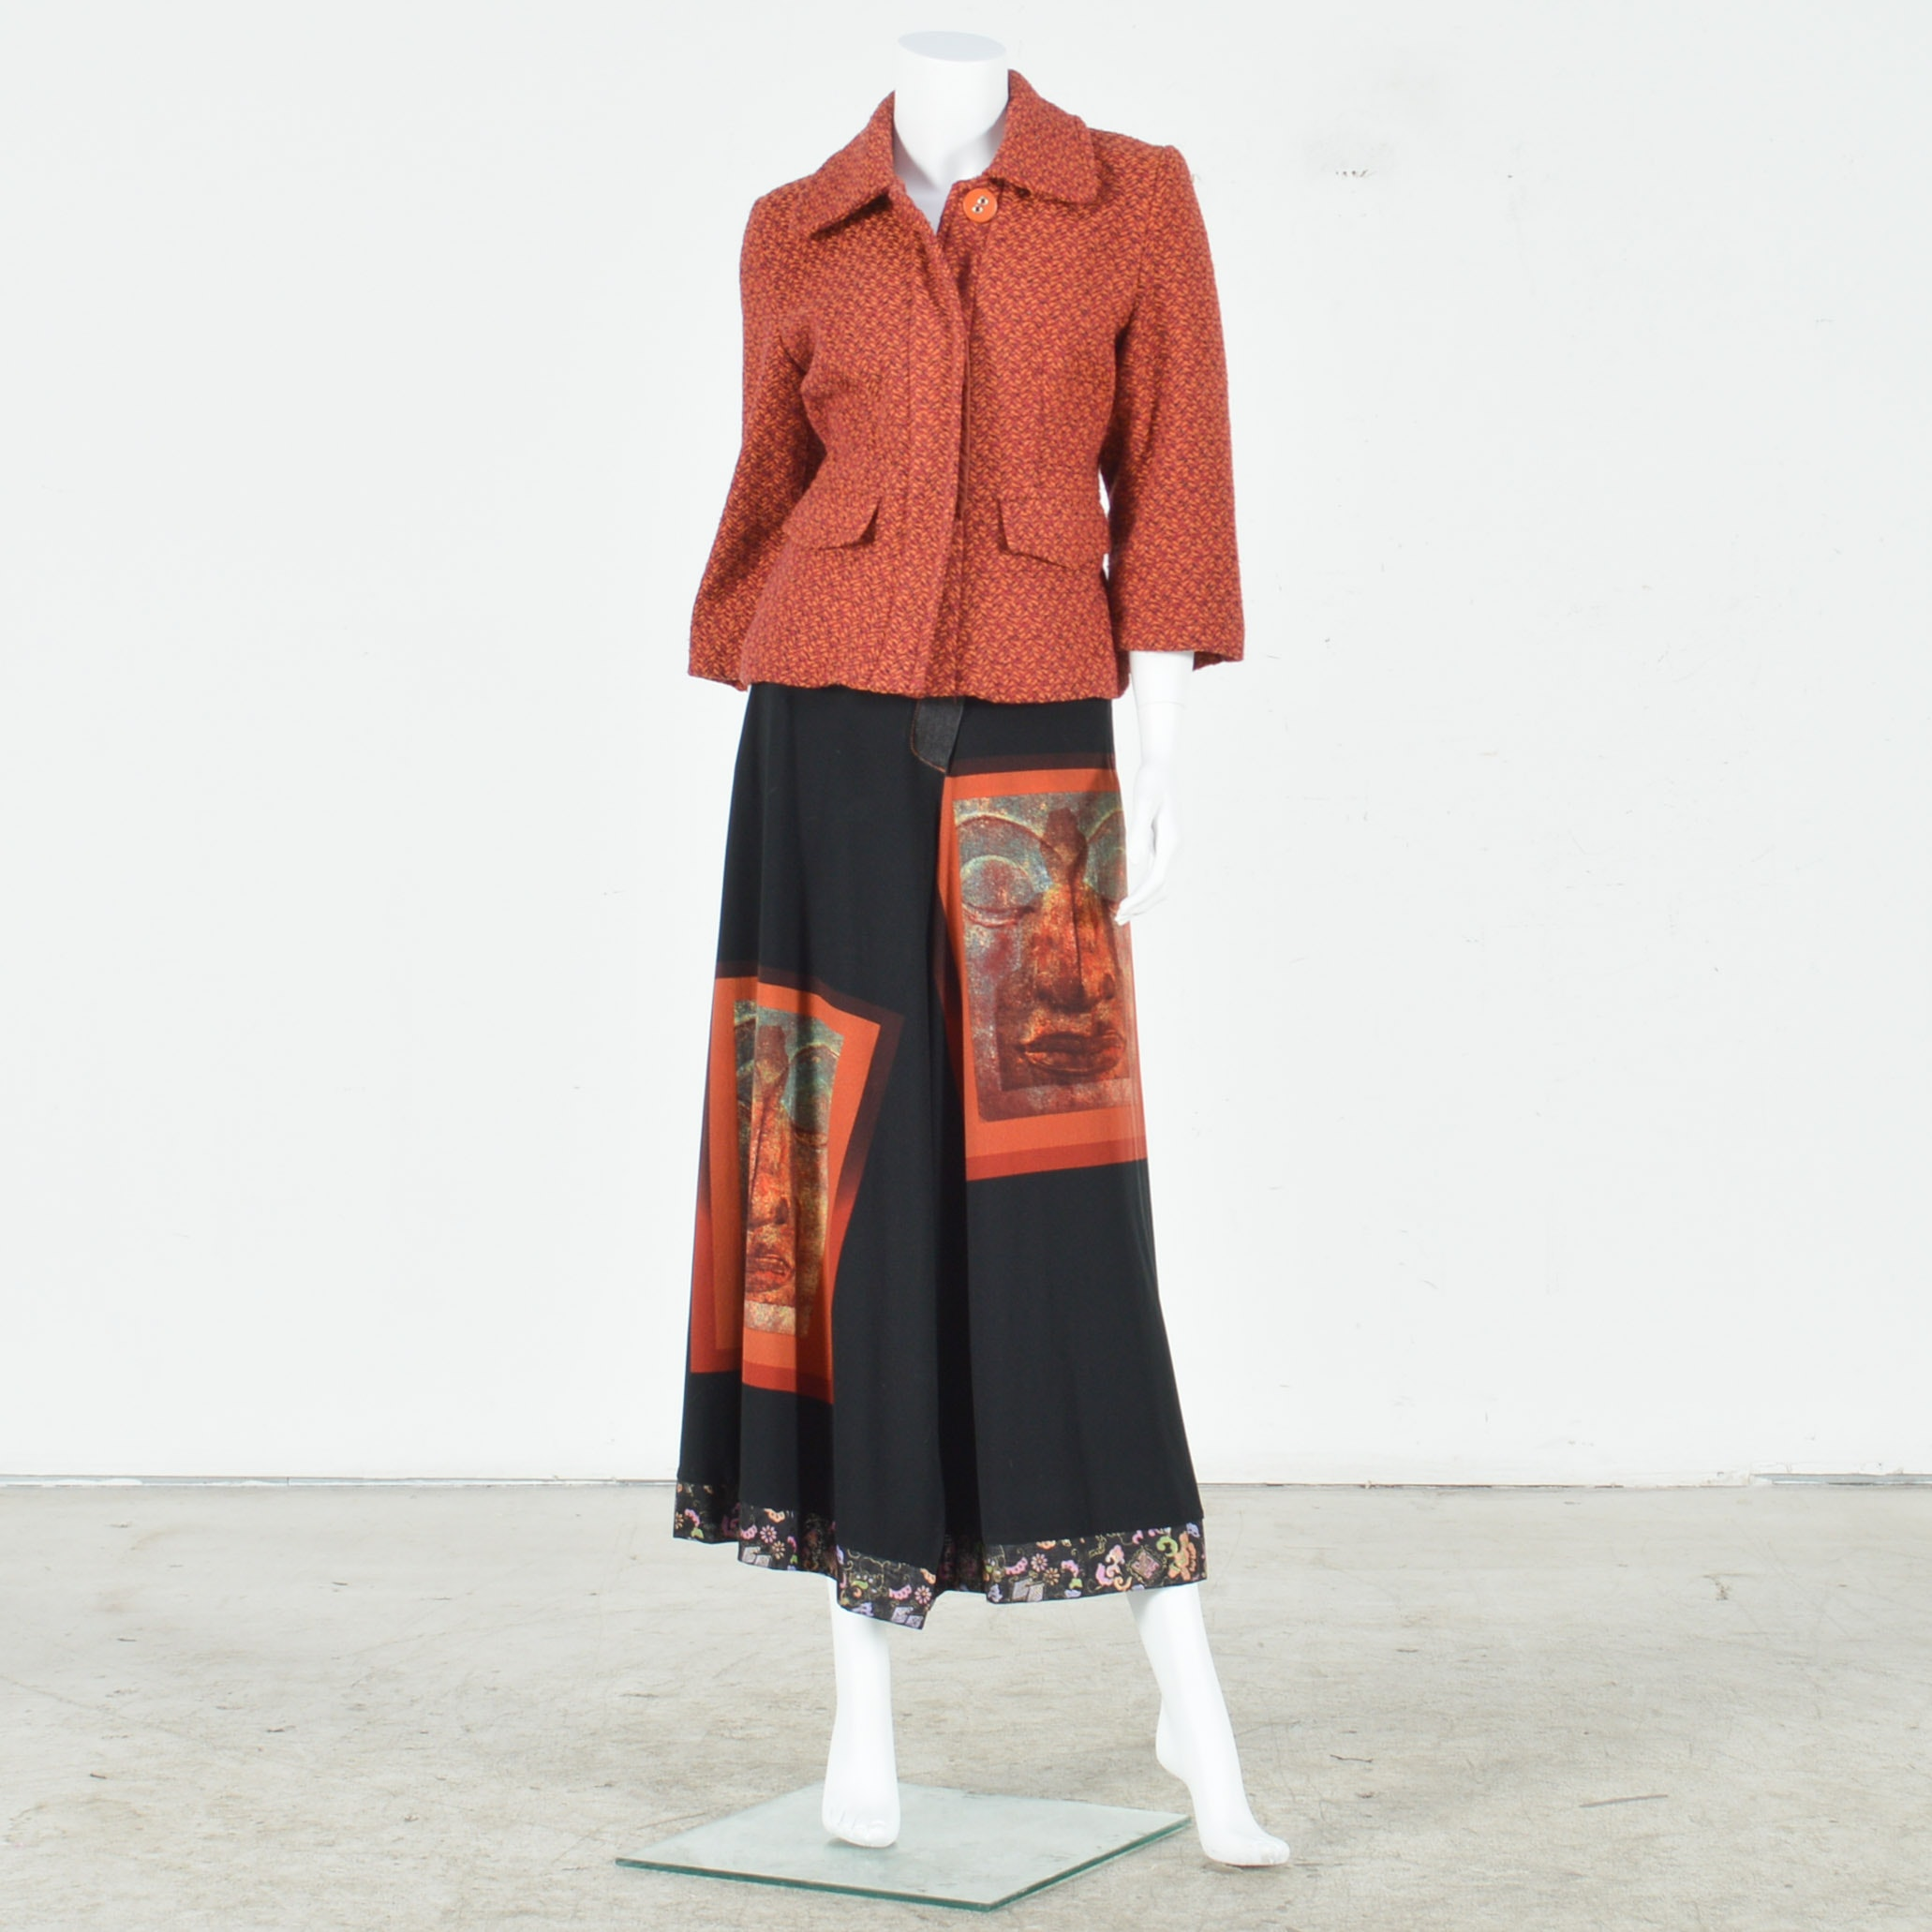 Women's Bohemian Mixed Media Skirt with Coordinating Boucle Jacket